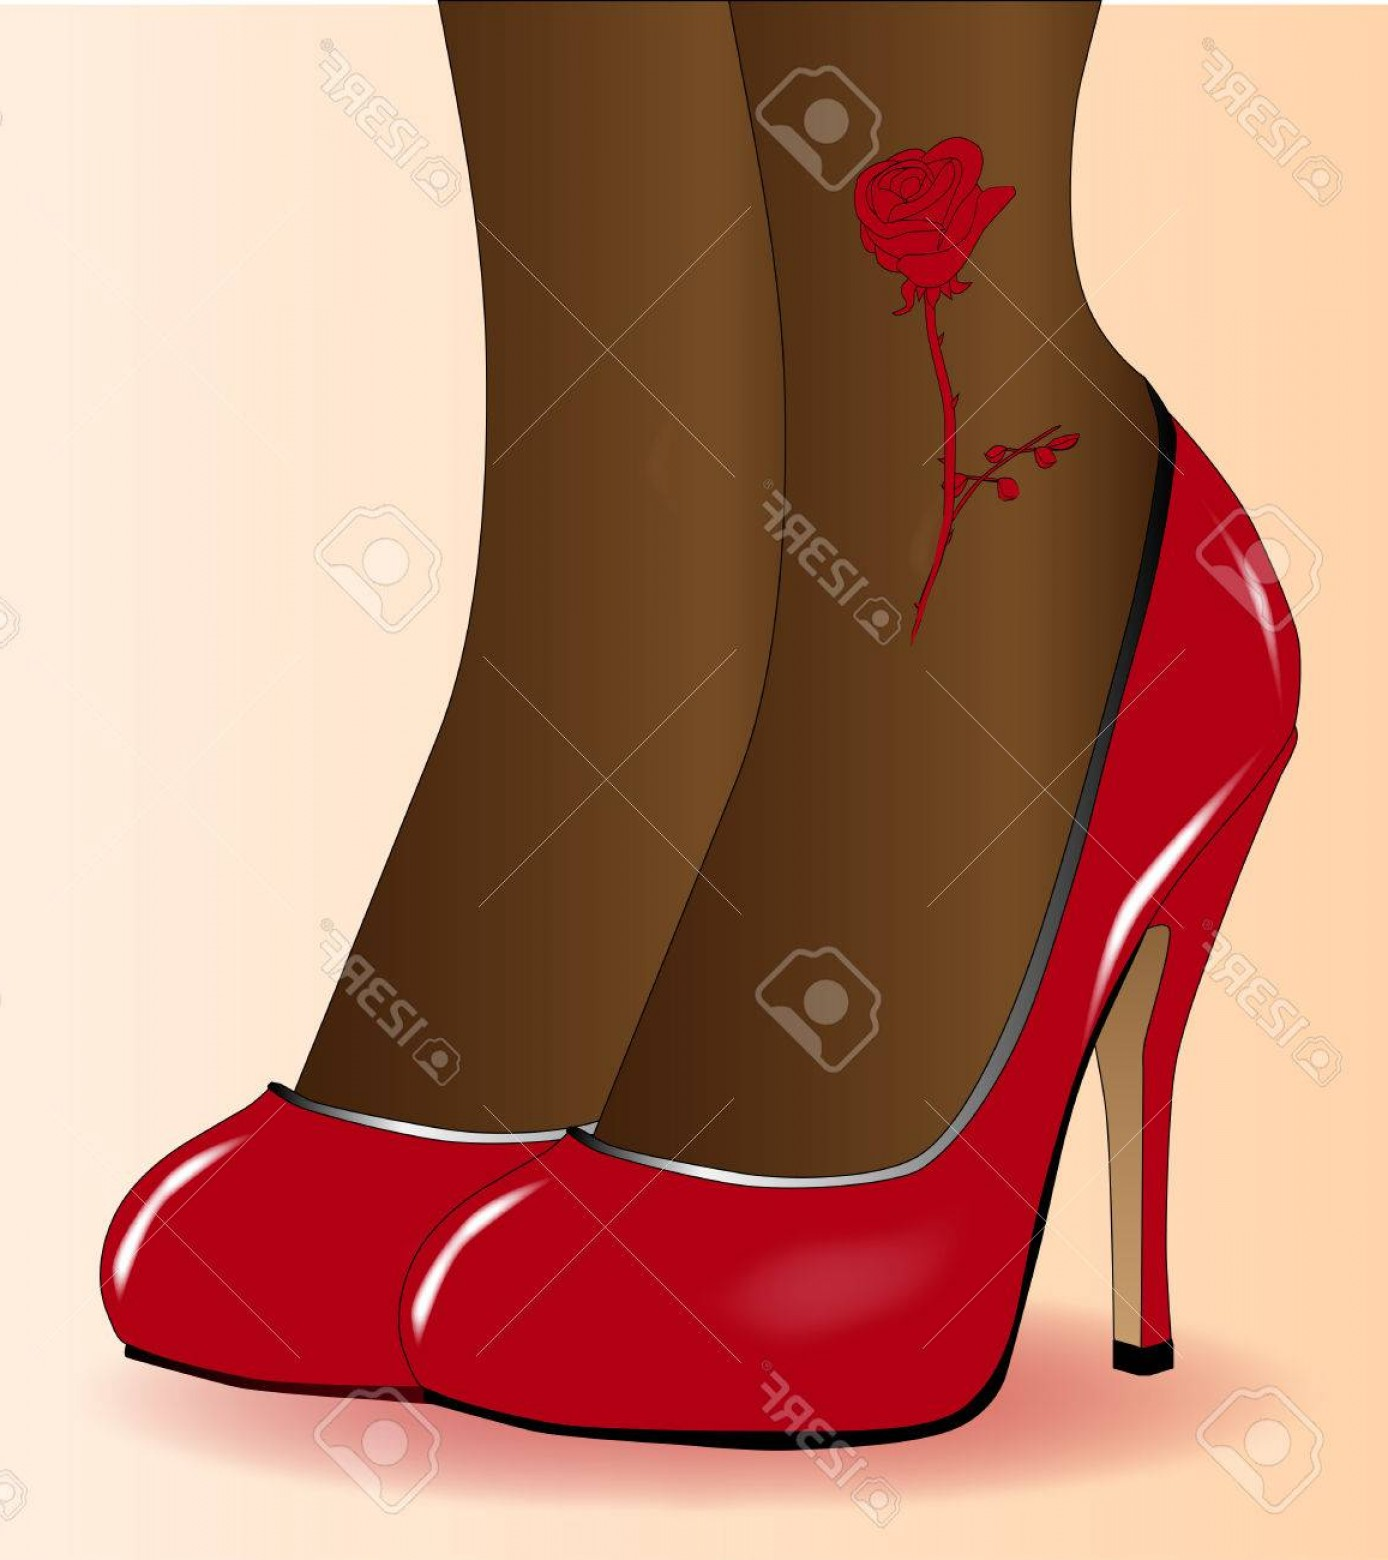 Silhouette Hee High Vector Lsitleetios: Photostock Vector A Pair Of Ladies Legs With A Red Rose Tattoo In Stiletto Heel Shoes